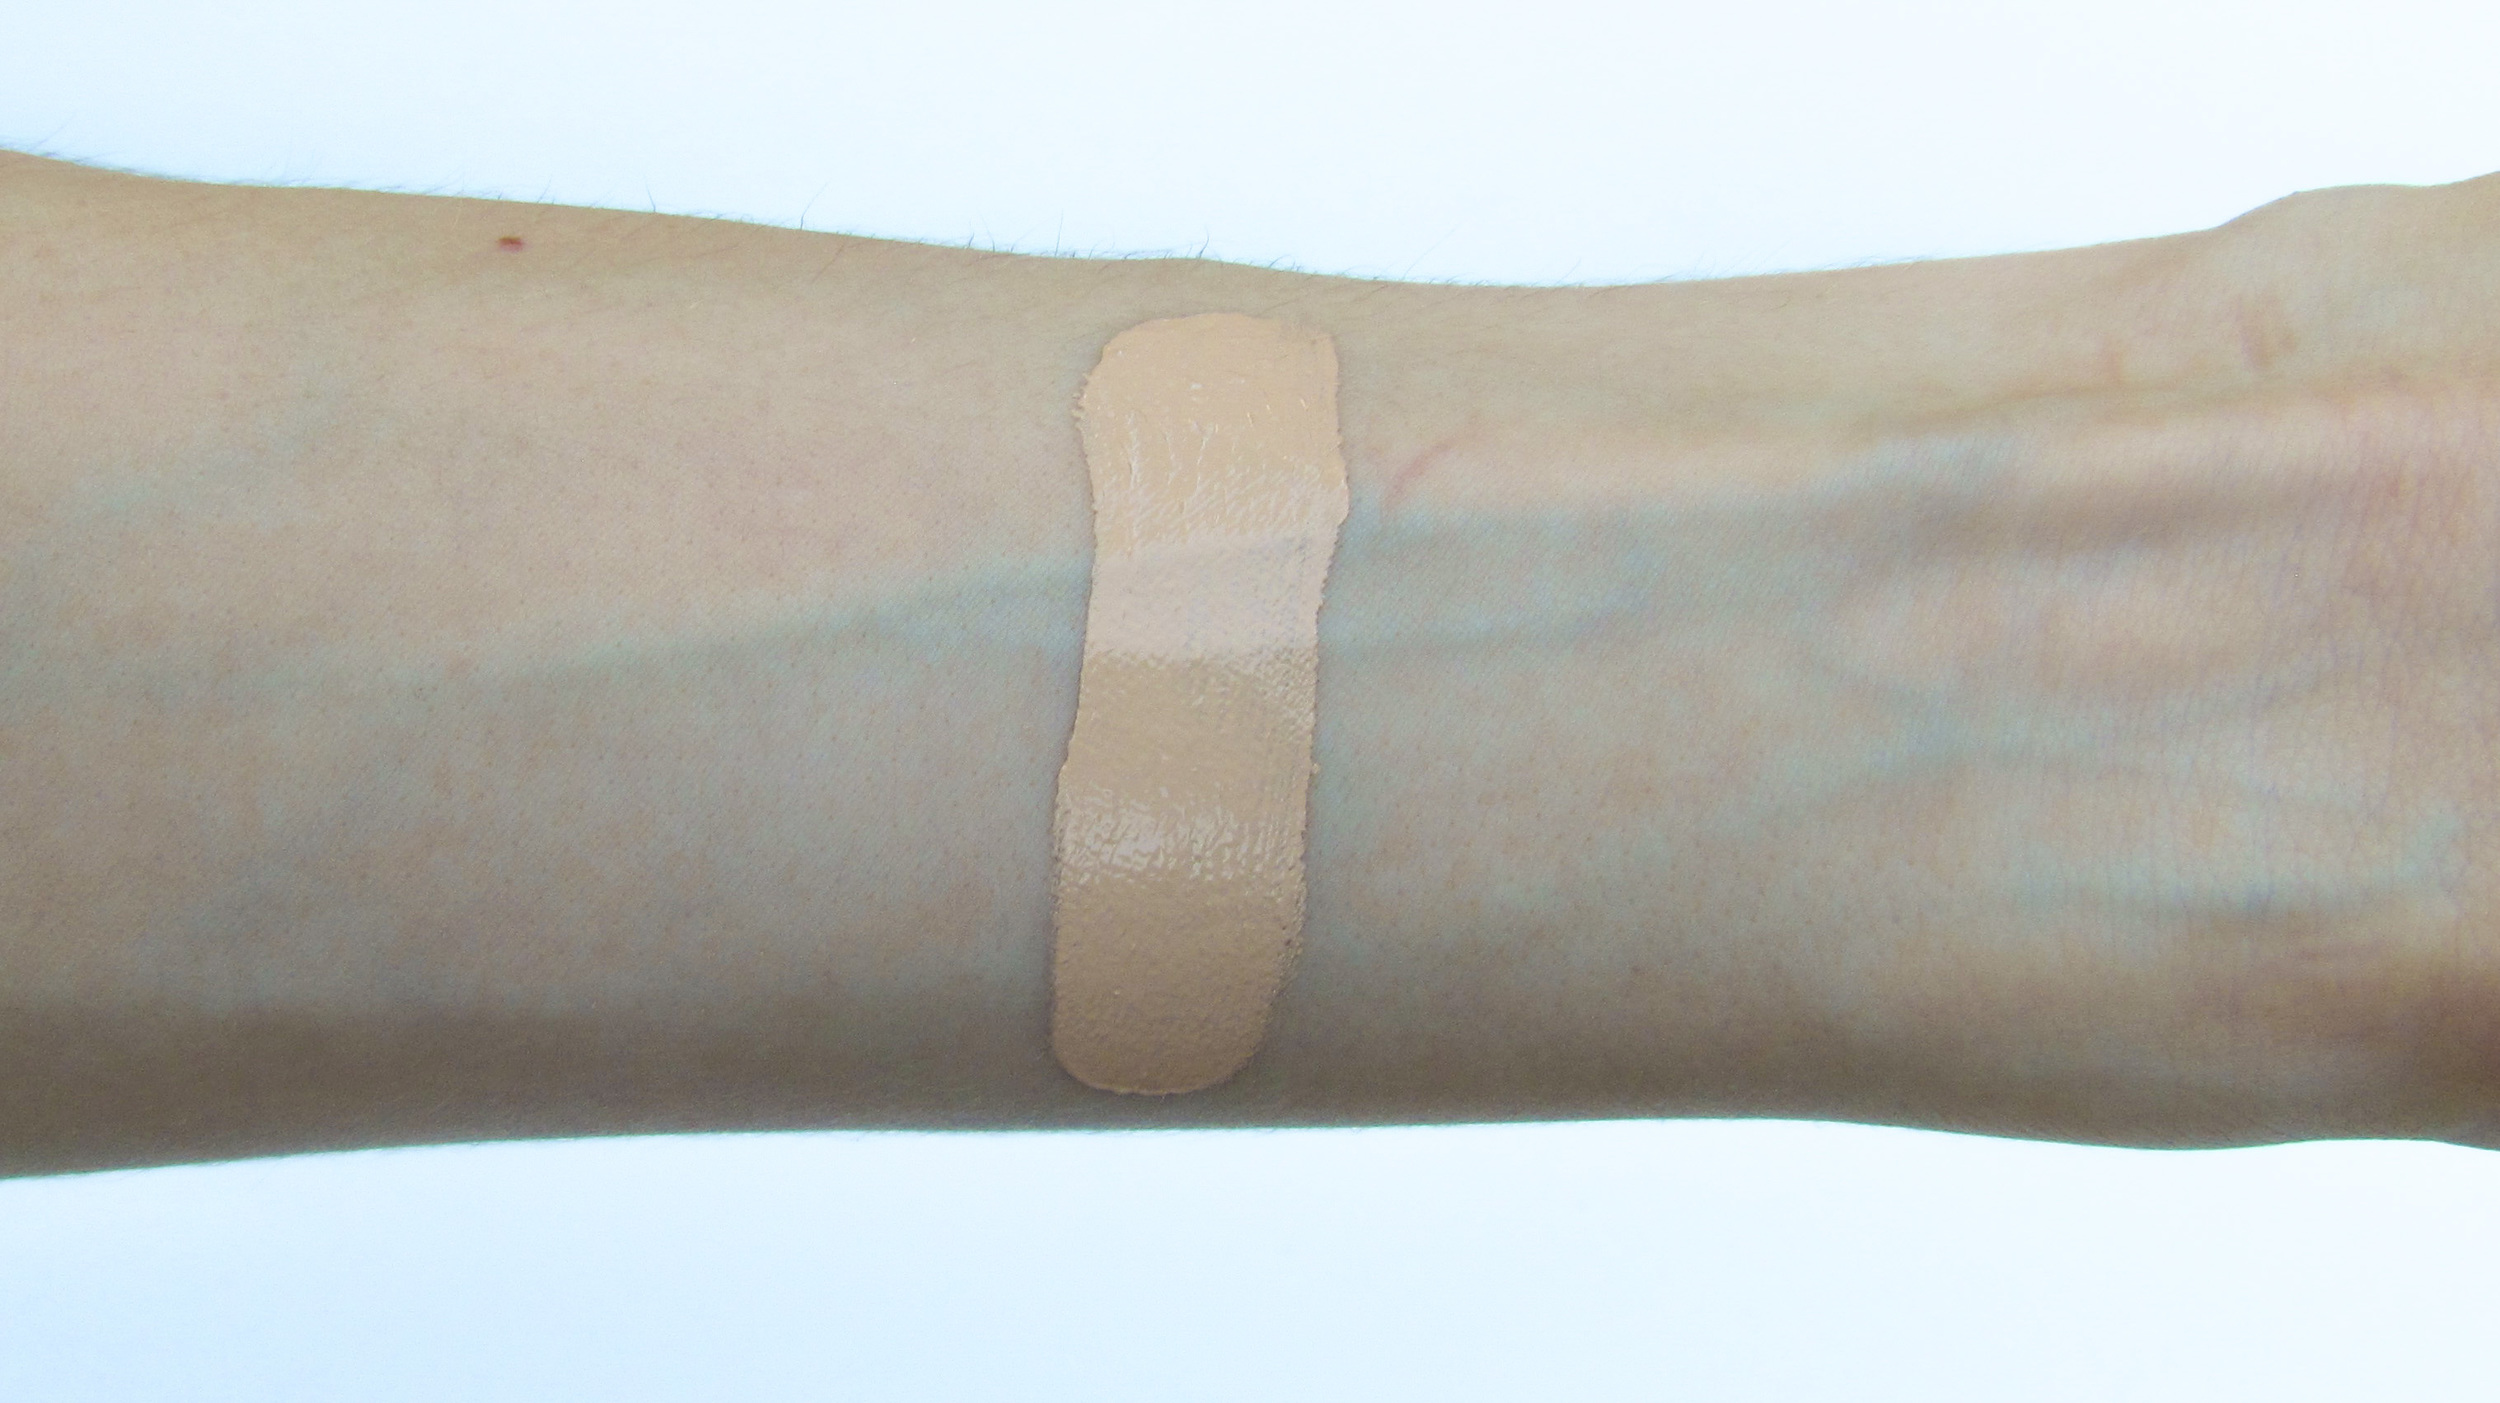 CHANEL Les Beiges Healthy Glow Foundation Review - Southern New Yorker